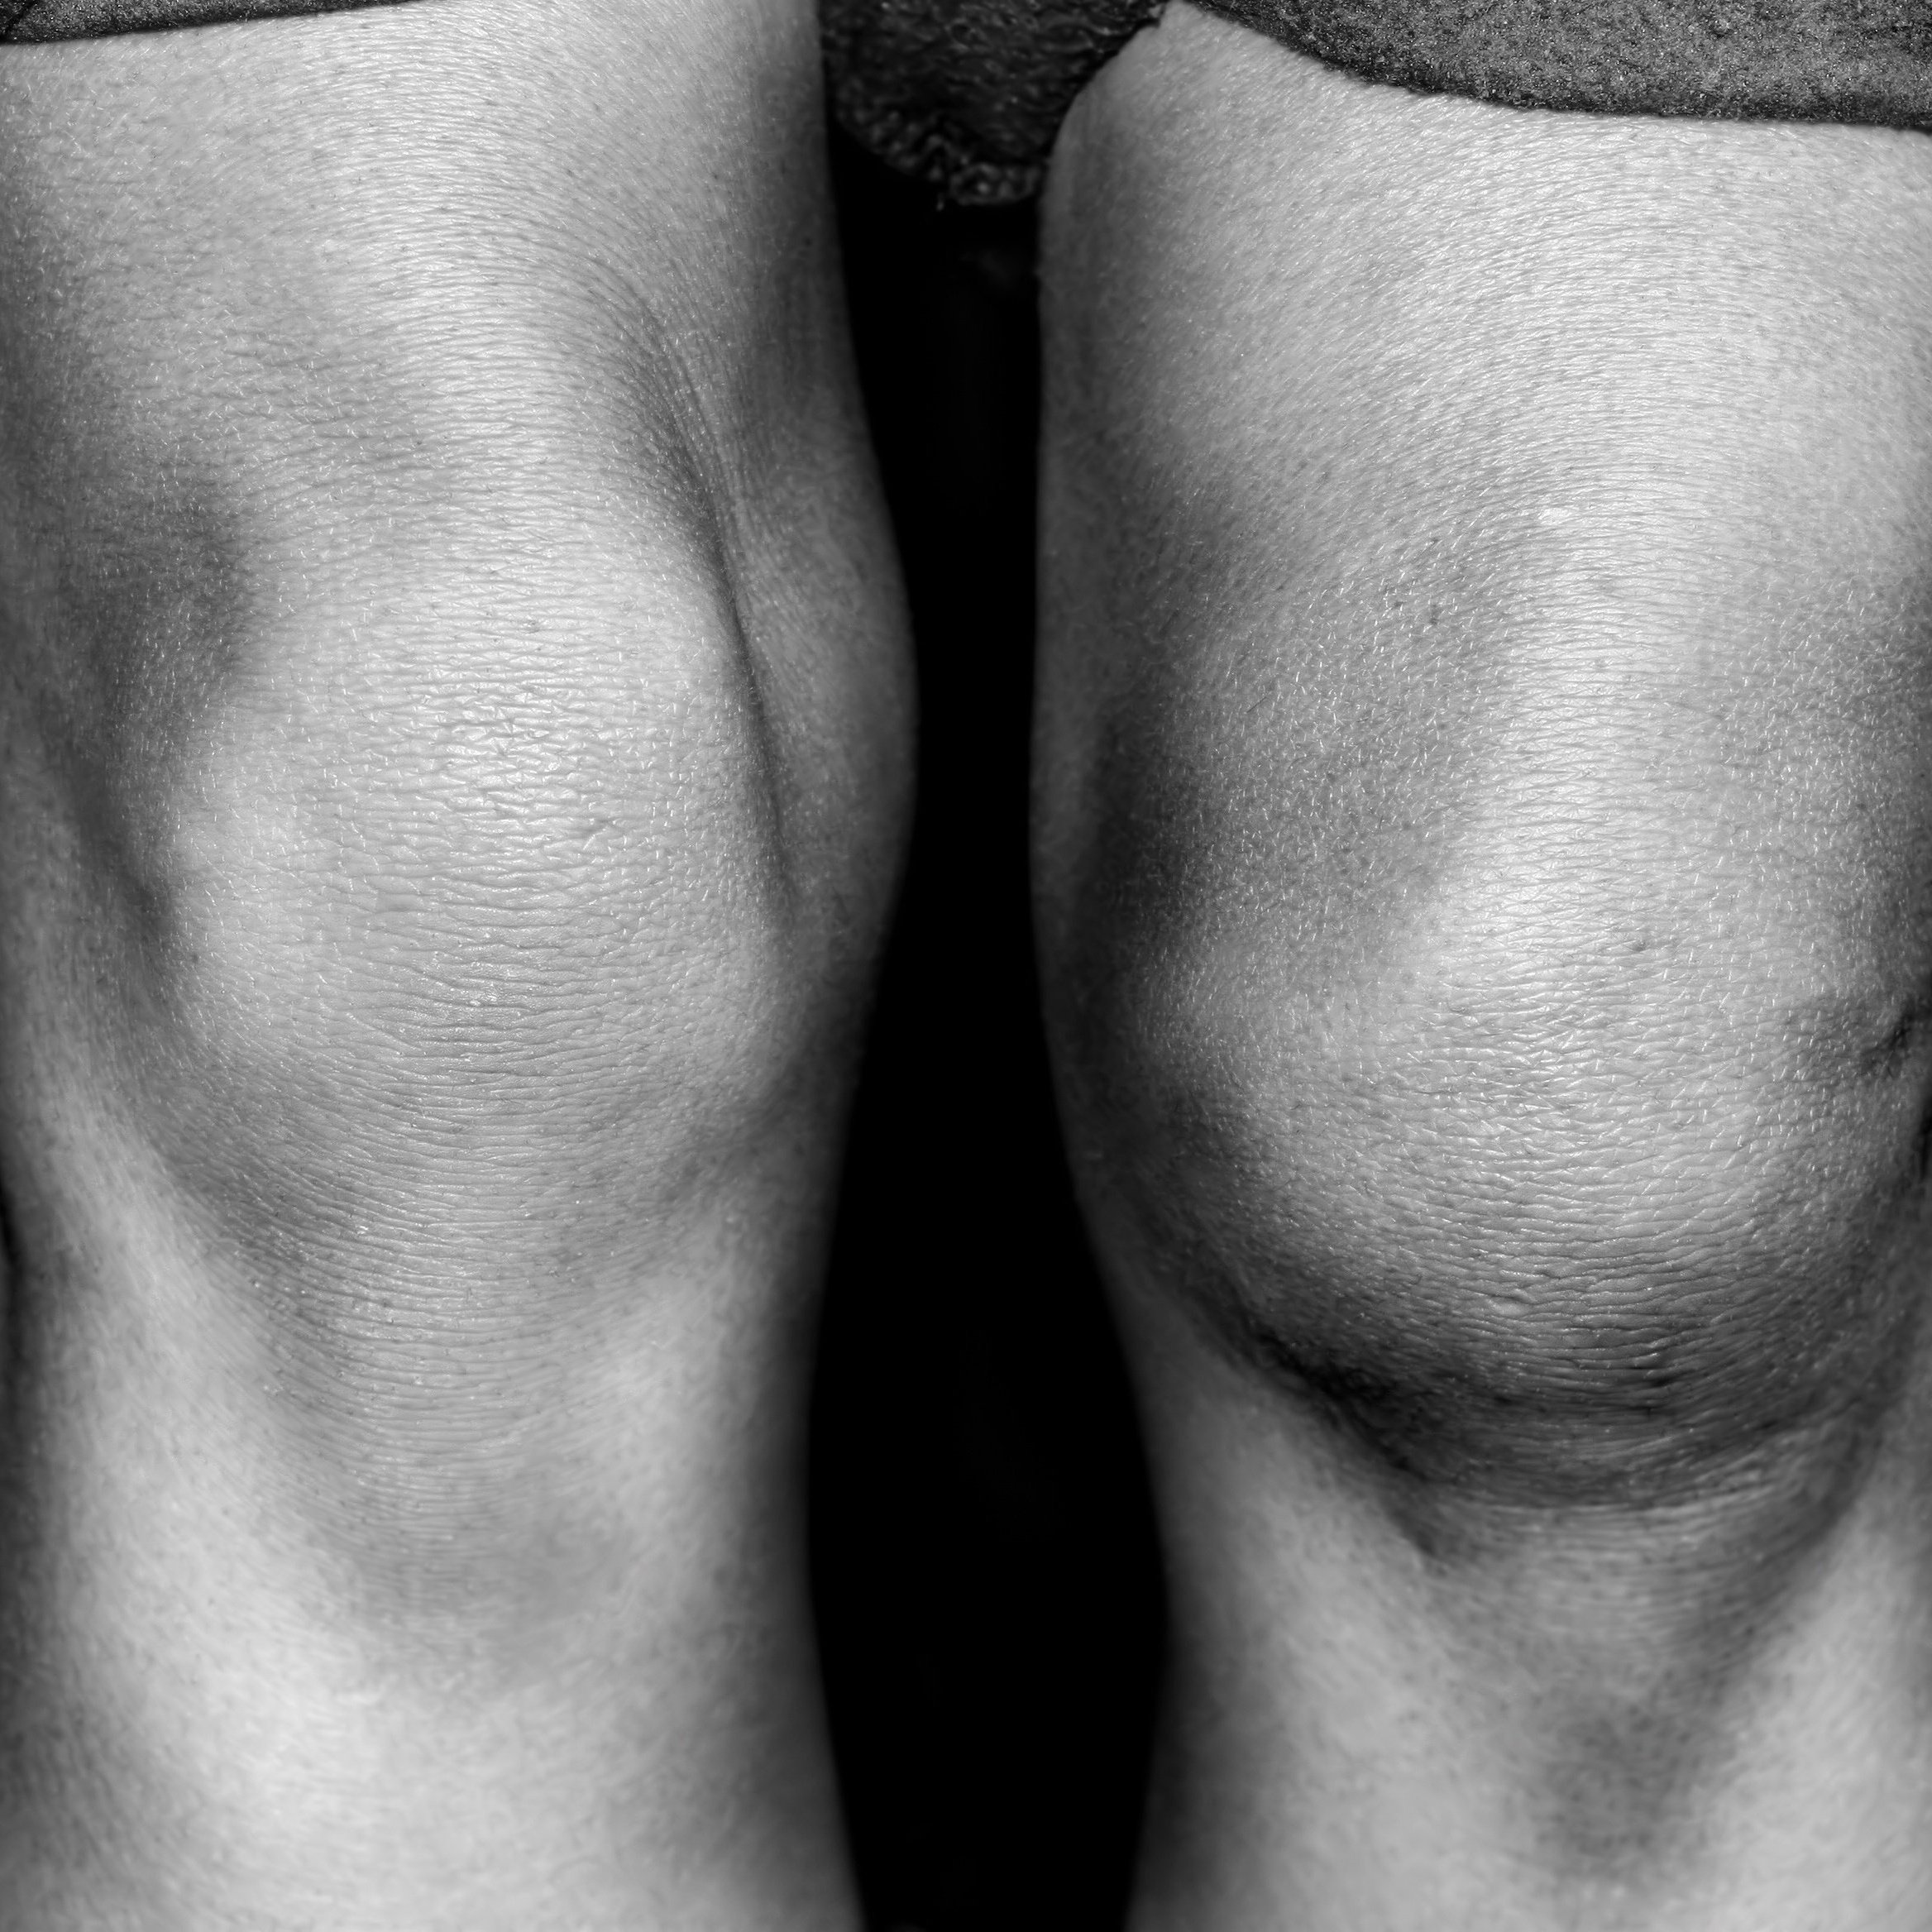 knees-857441-edited